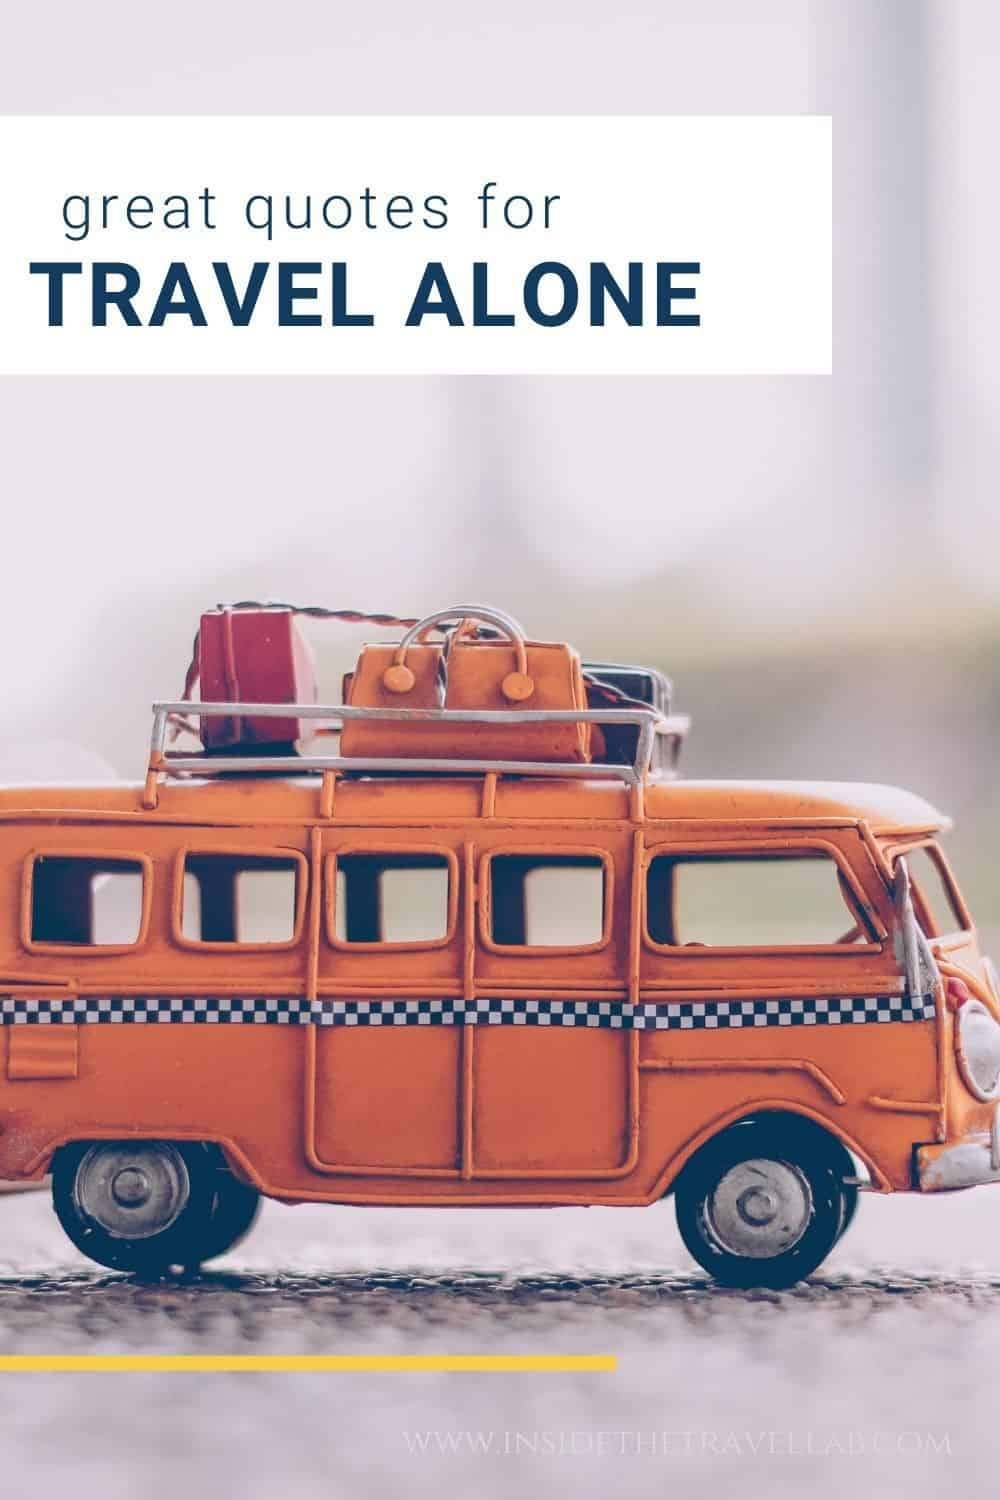 Best quotes for travelling alone - solo travel quotes and instagram captions